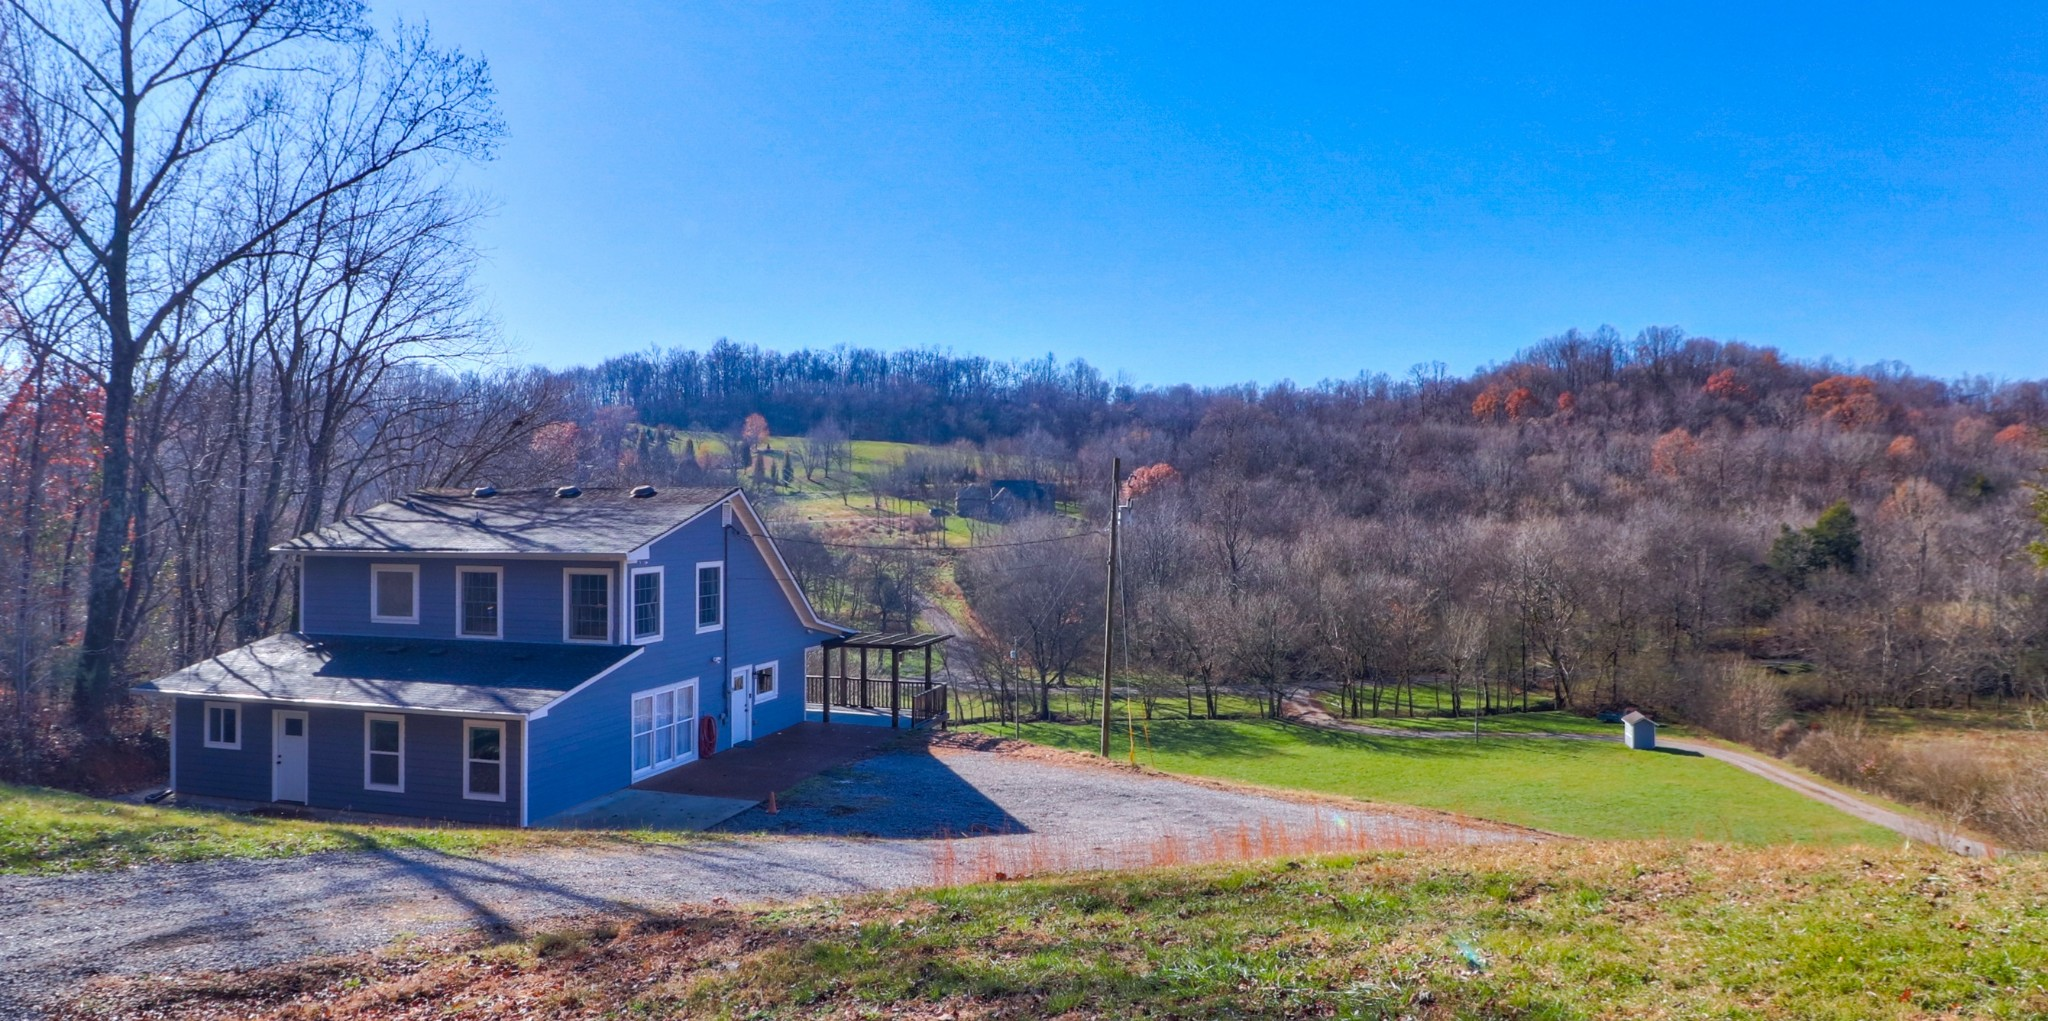 1184 Poor House Rd Property Photo - Lewisburg, TN real estate listing